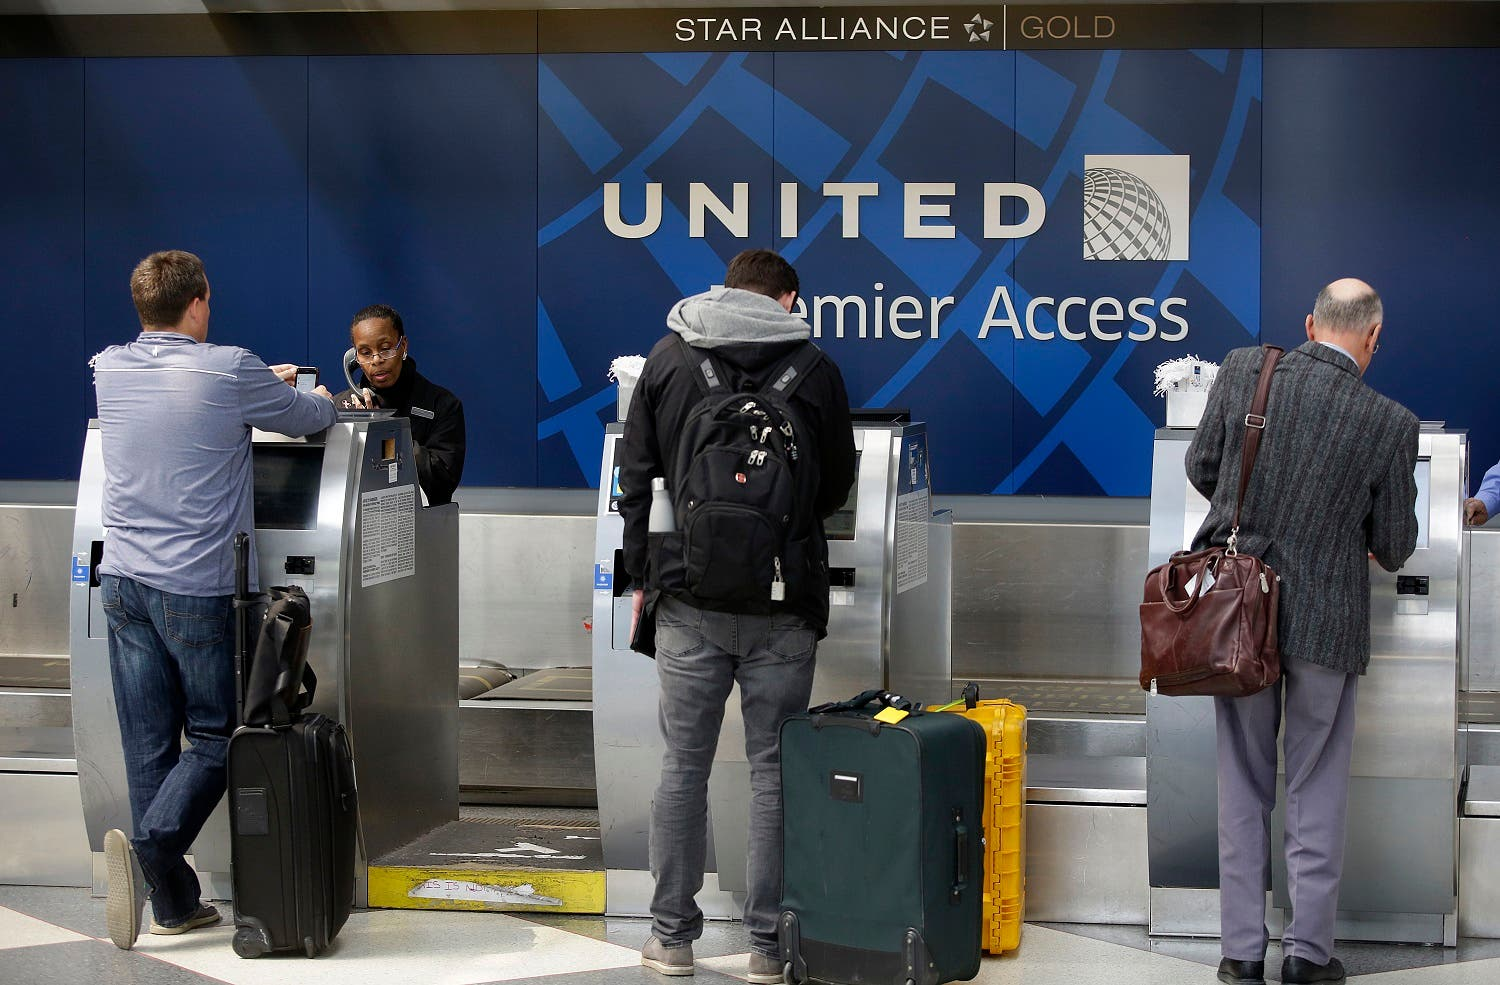 Travelers check-in at the United Airlines Premier Access at O'Hare International Airport on April 12, 2017 in Chicago, Illinois. (AFP)